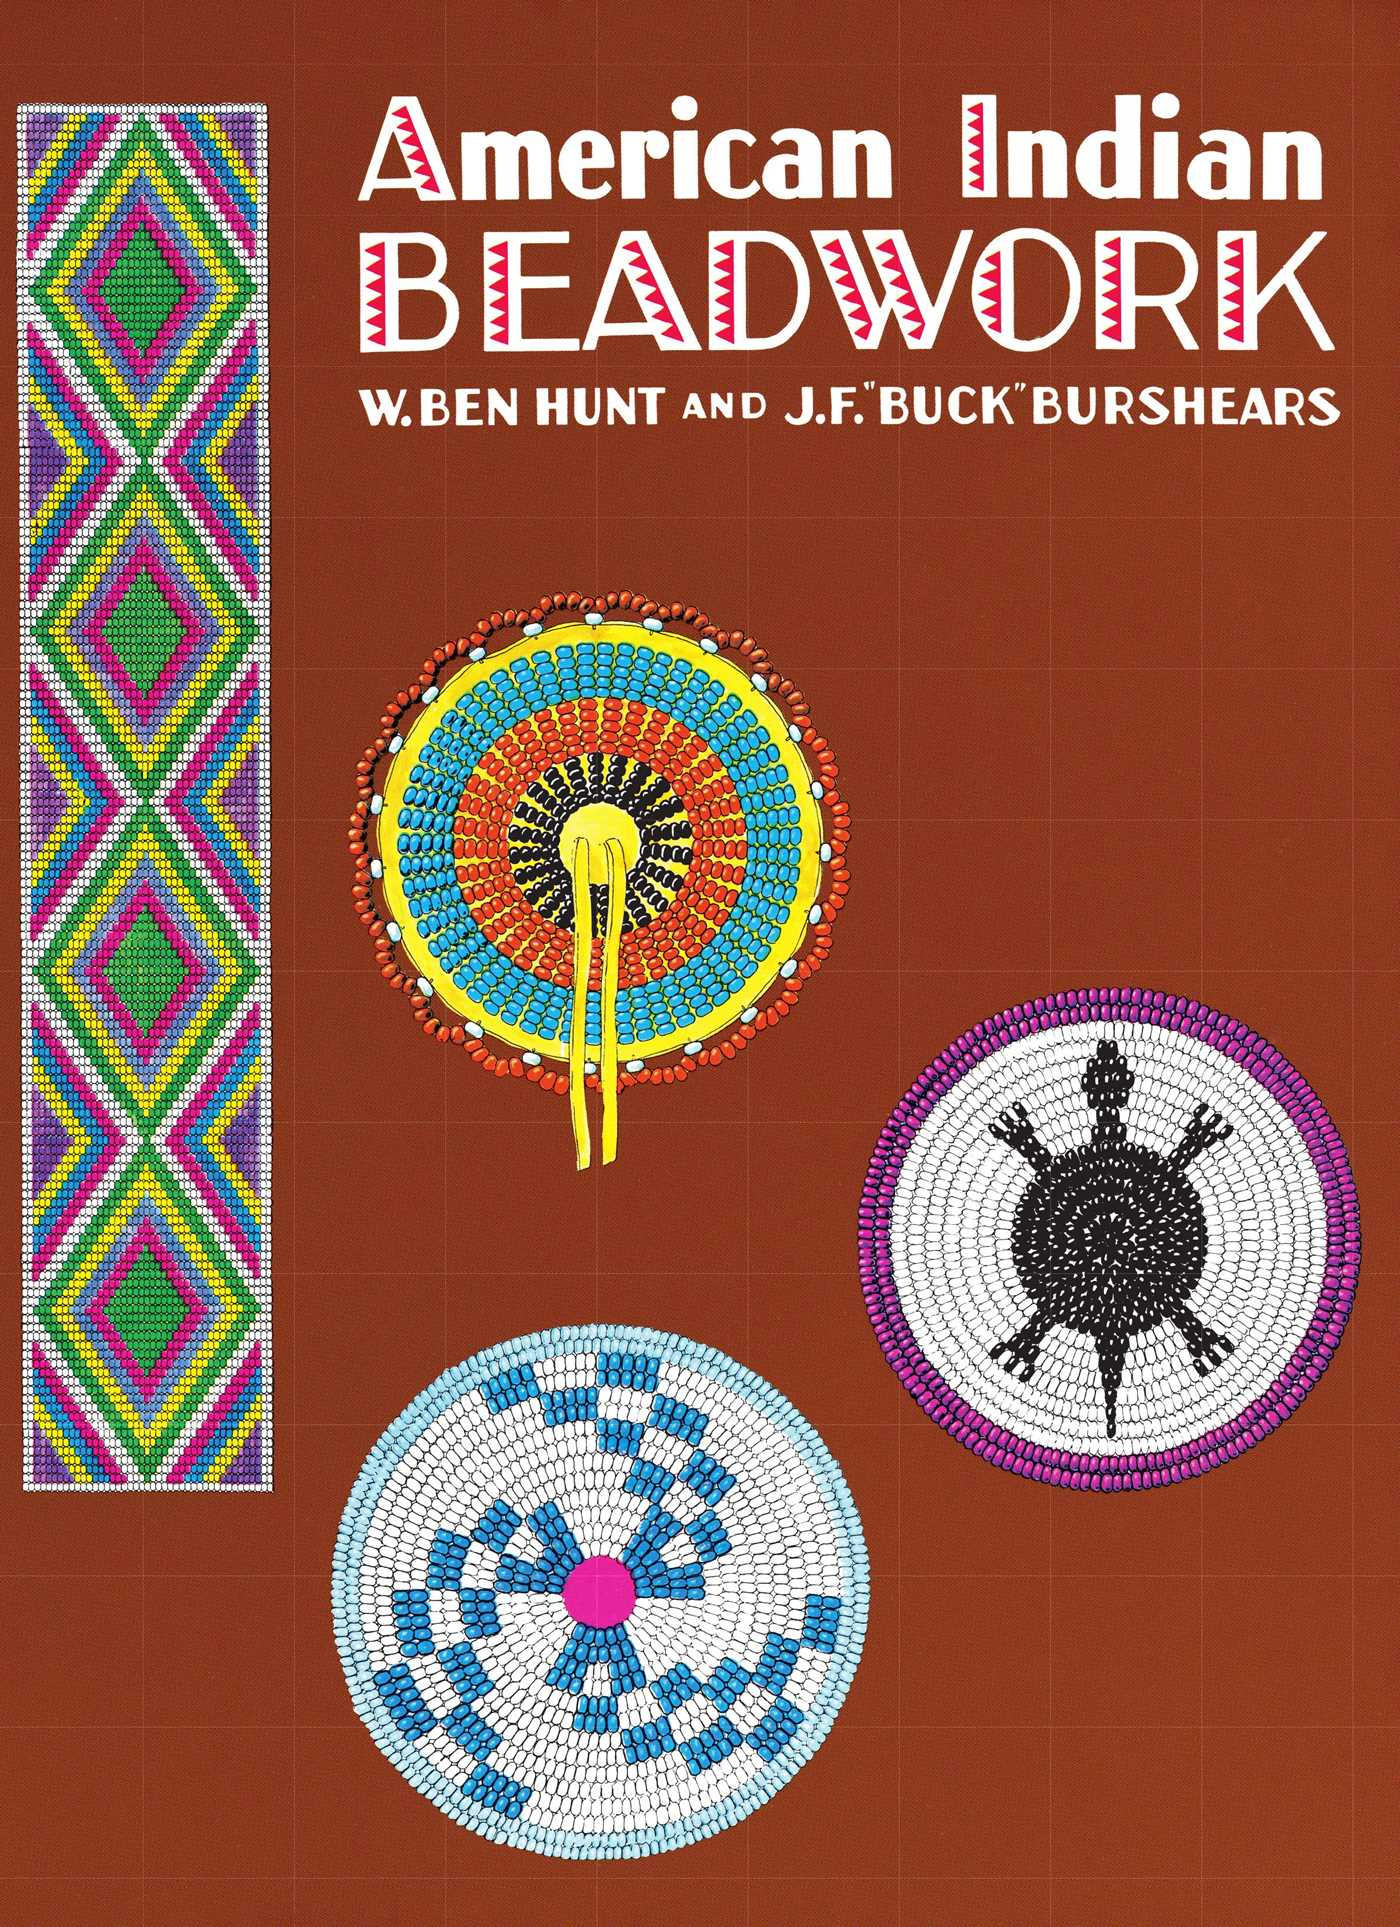 American Indian Beadwork | Book by J.F. "|1400|1927|?|False|1a32db8552b7b3f5e95820ddfa19a3cf|False|UNLIKELY|0.37979570031166077